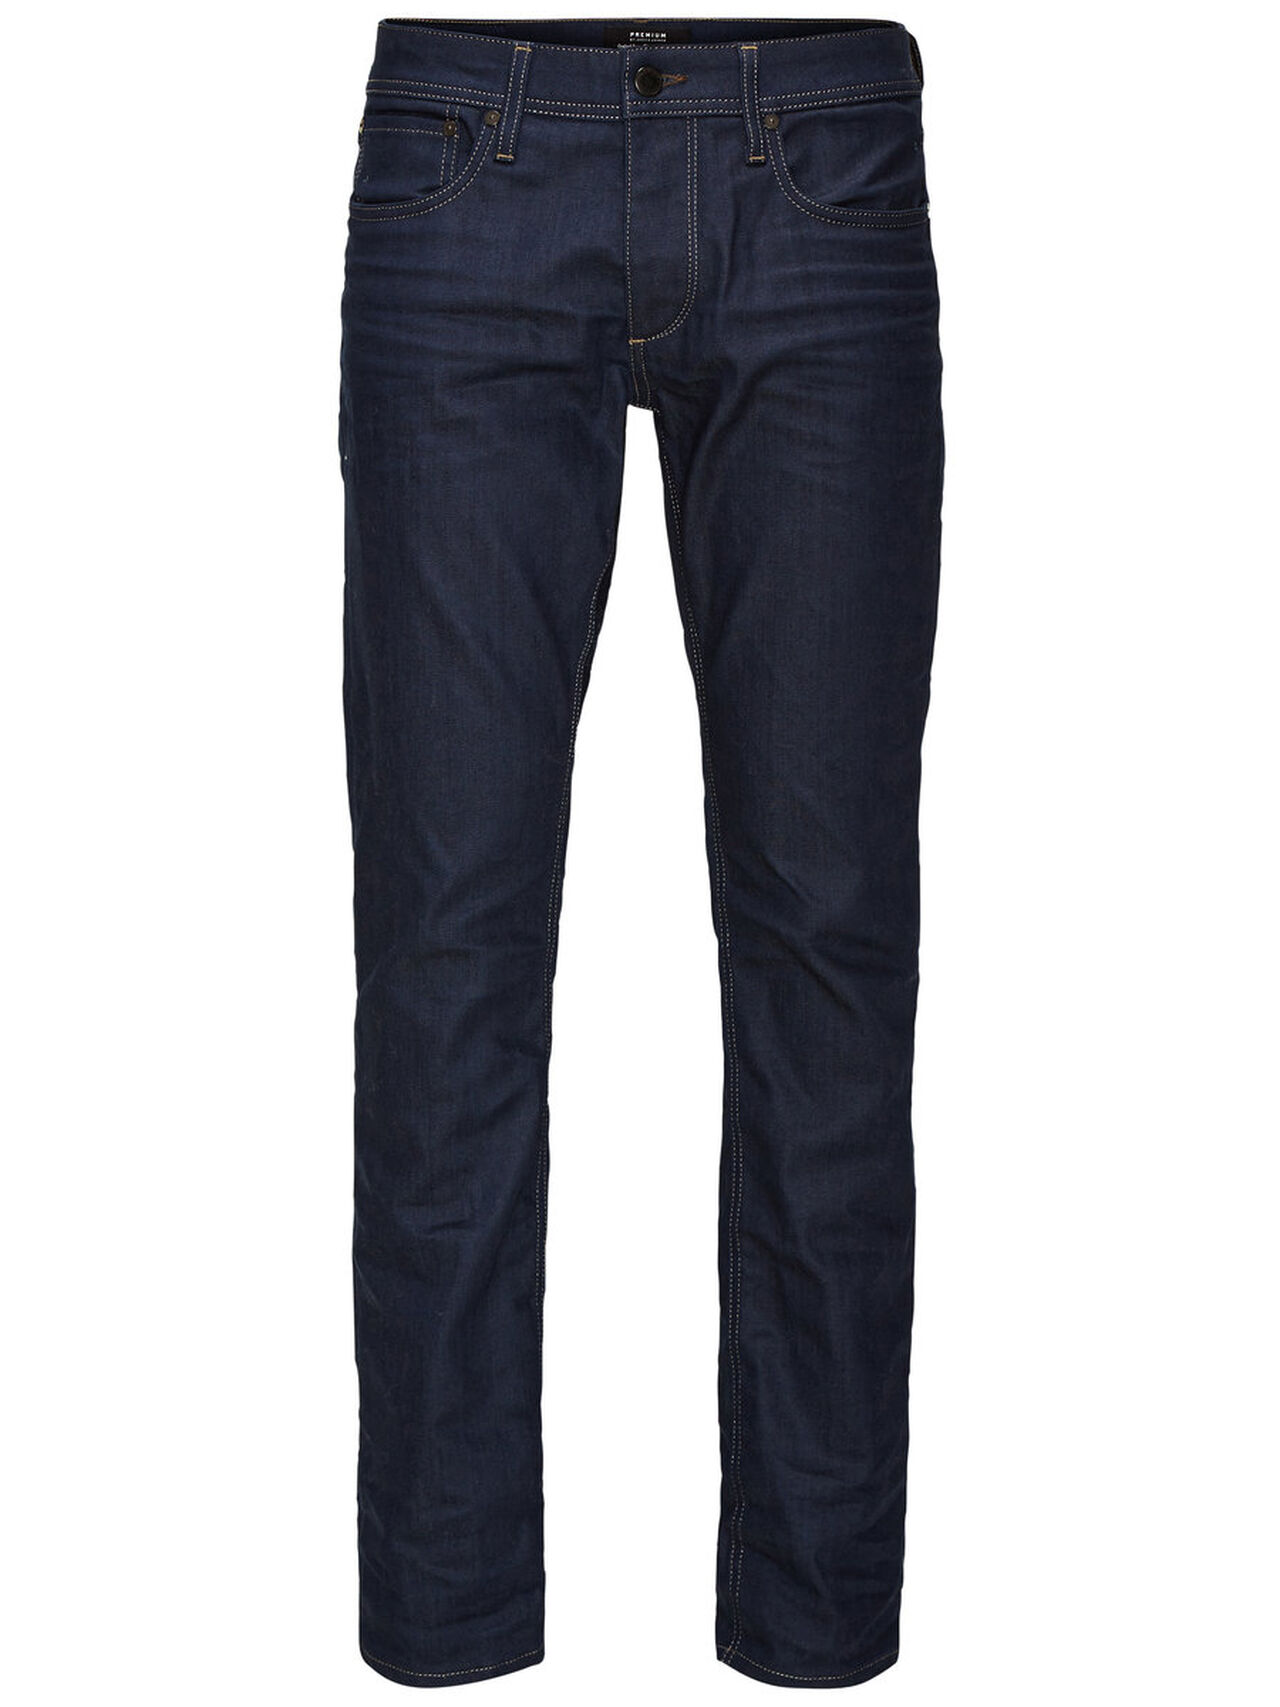 Clark Original 903 Regular Fit Jeans